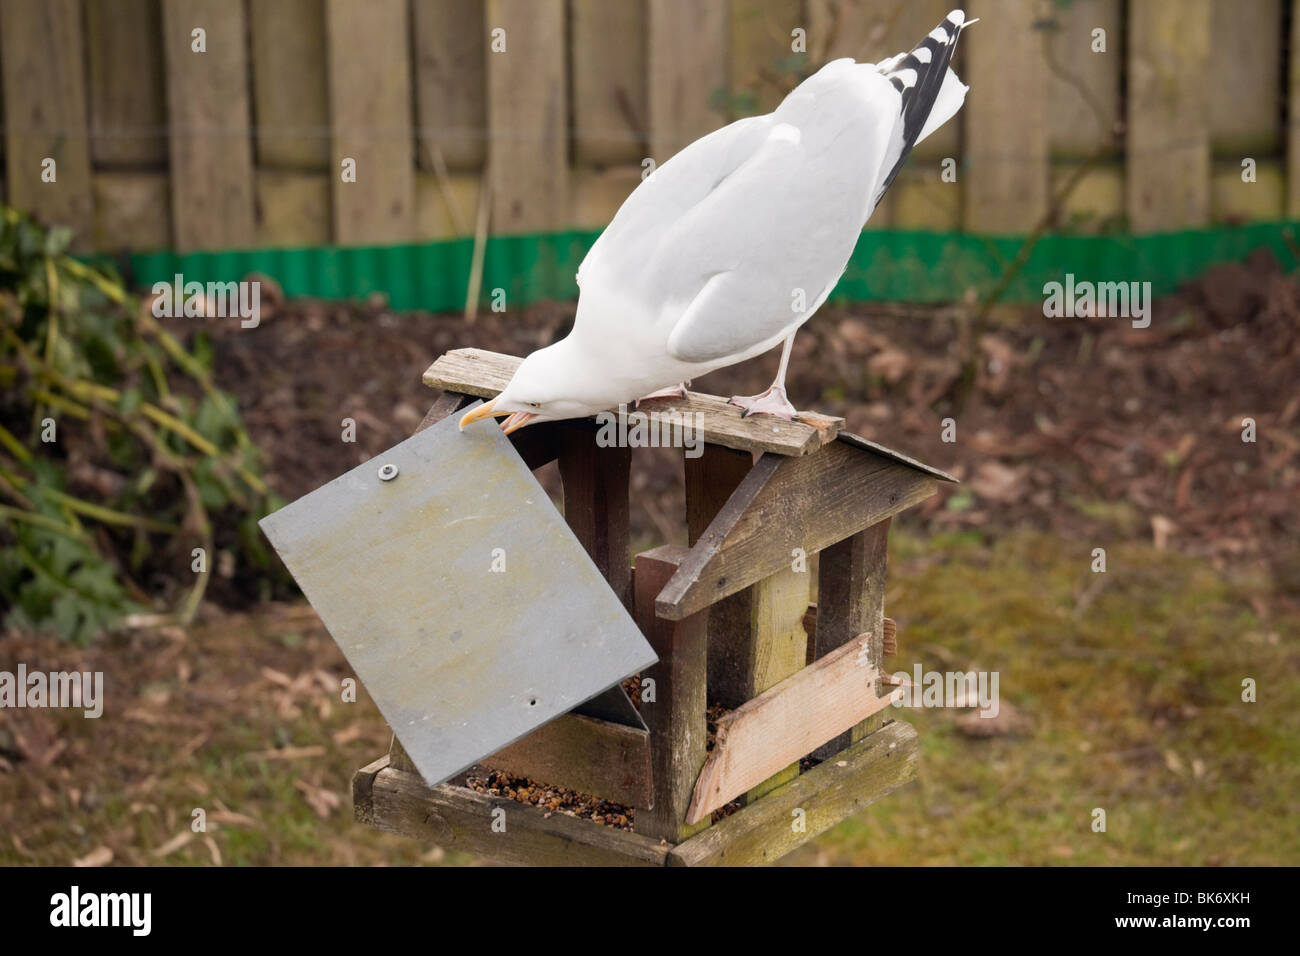 A Herring Gull (Larus argentatus) breaking a garden bird table to get to the food. UK, Britain. - Stock Image